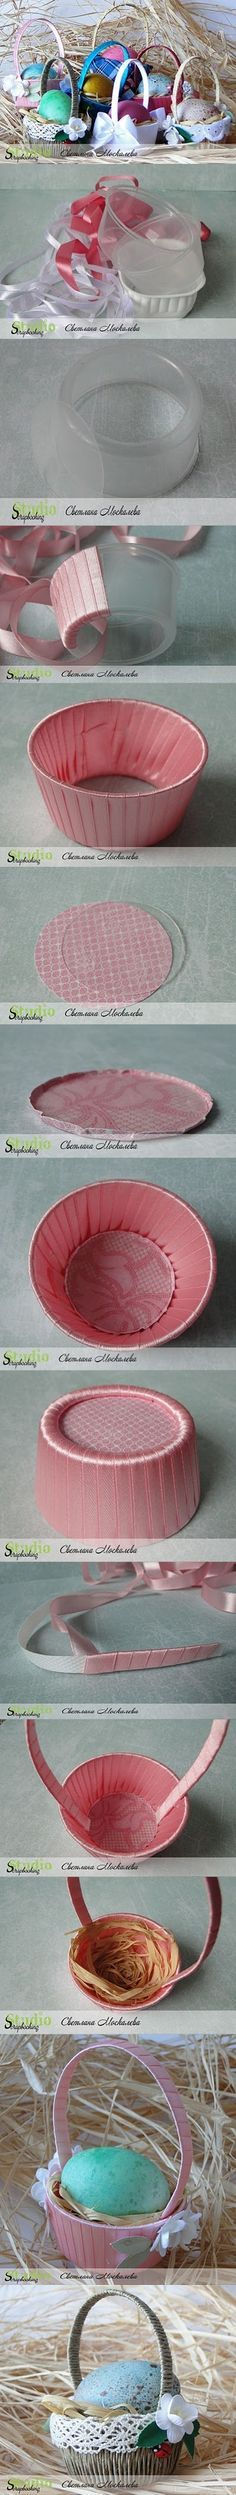 DIY Easter Basket with Disposable Plastic Bowl - http://www.healthdaily.me/diy-easter-basket-with-disposable-plastic-bowl/